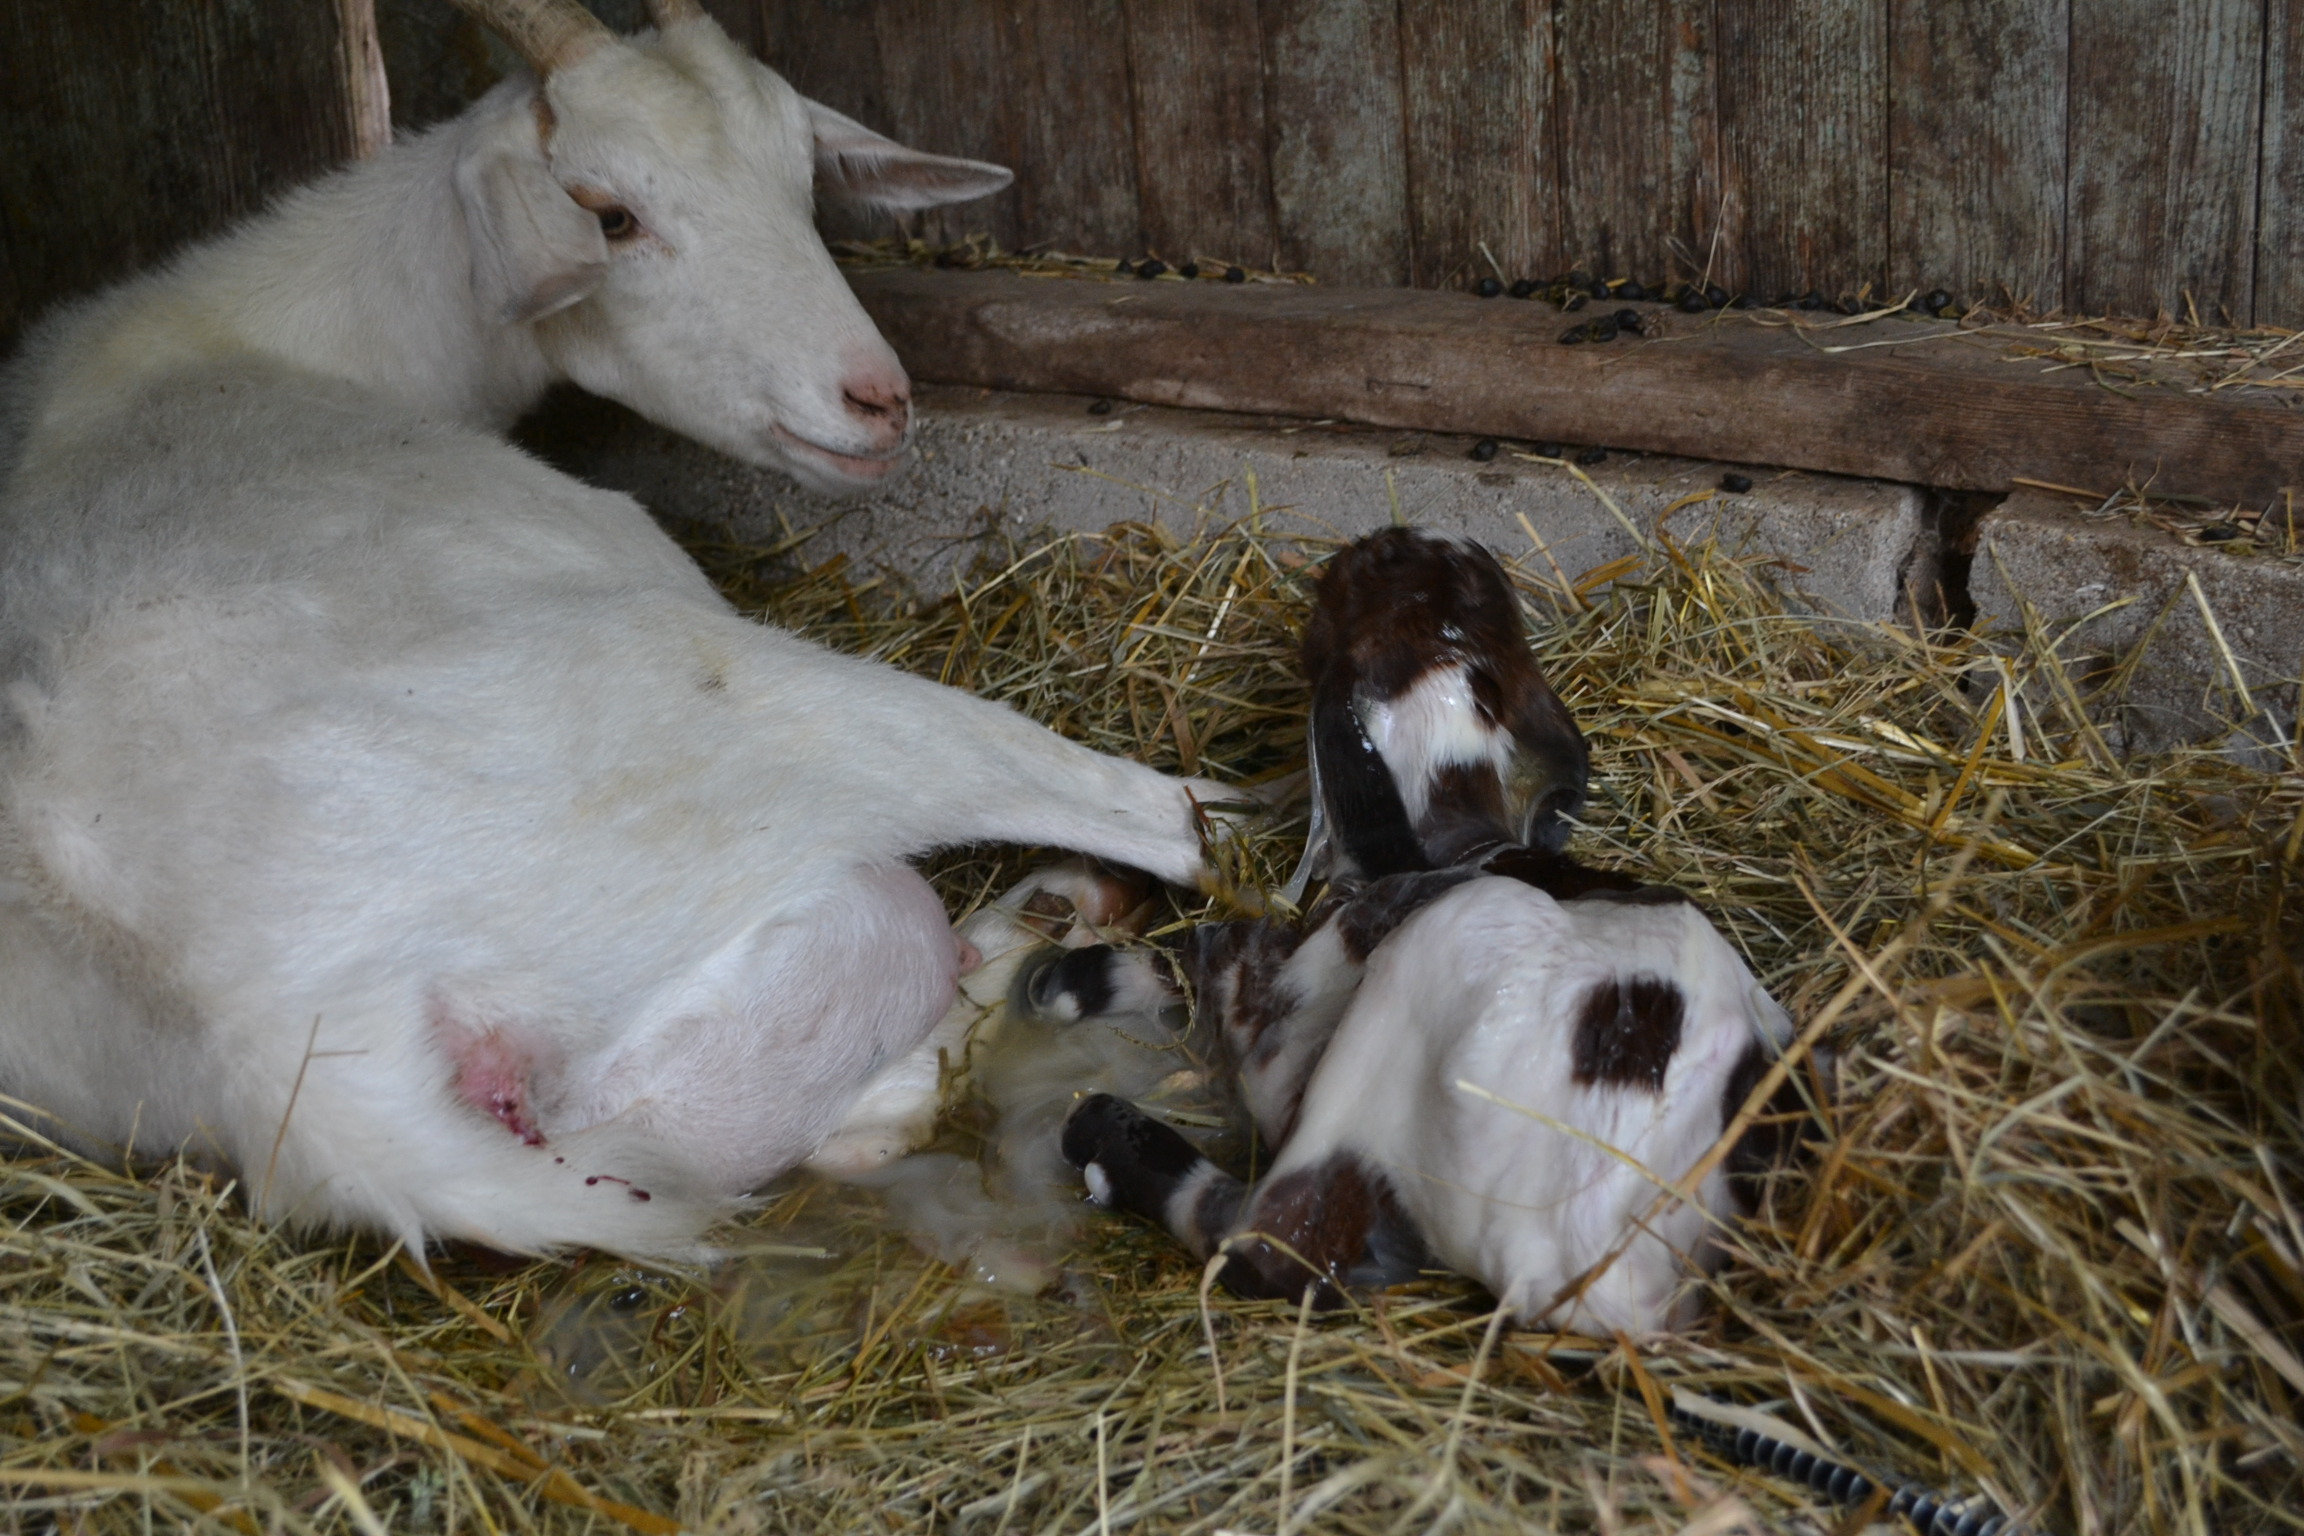 birth gives goat having she pistol already arrived seconds few